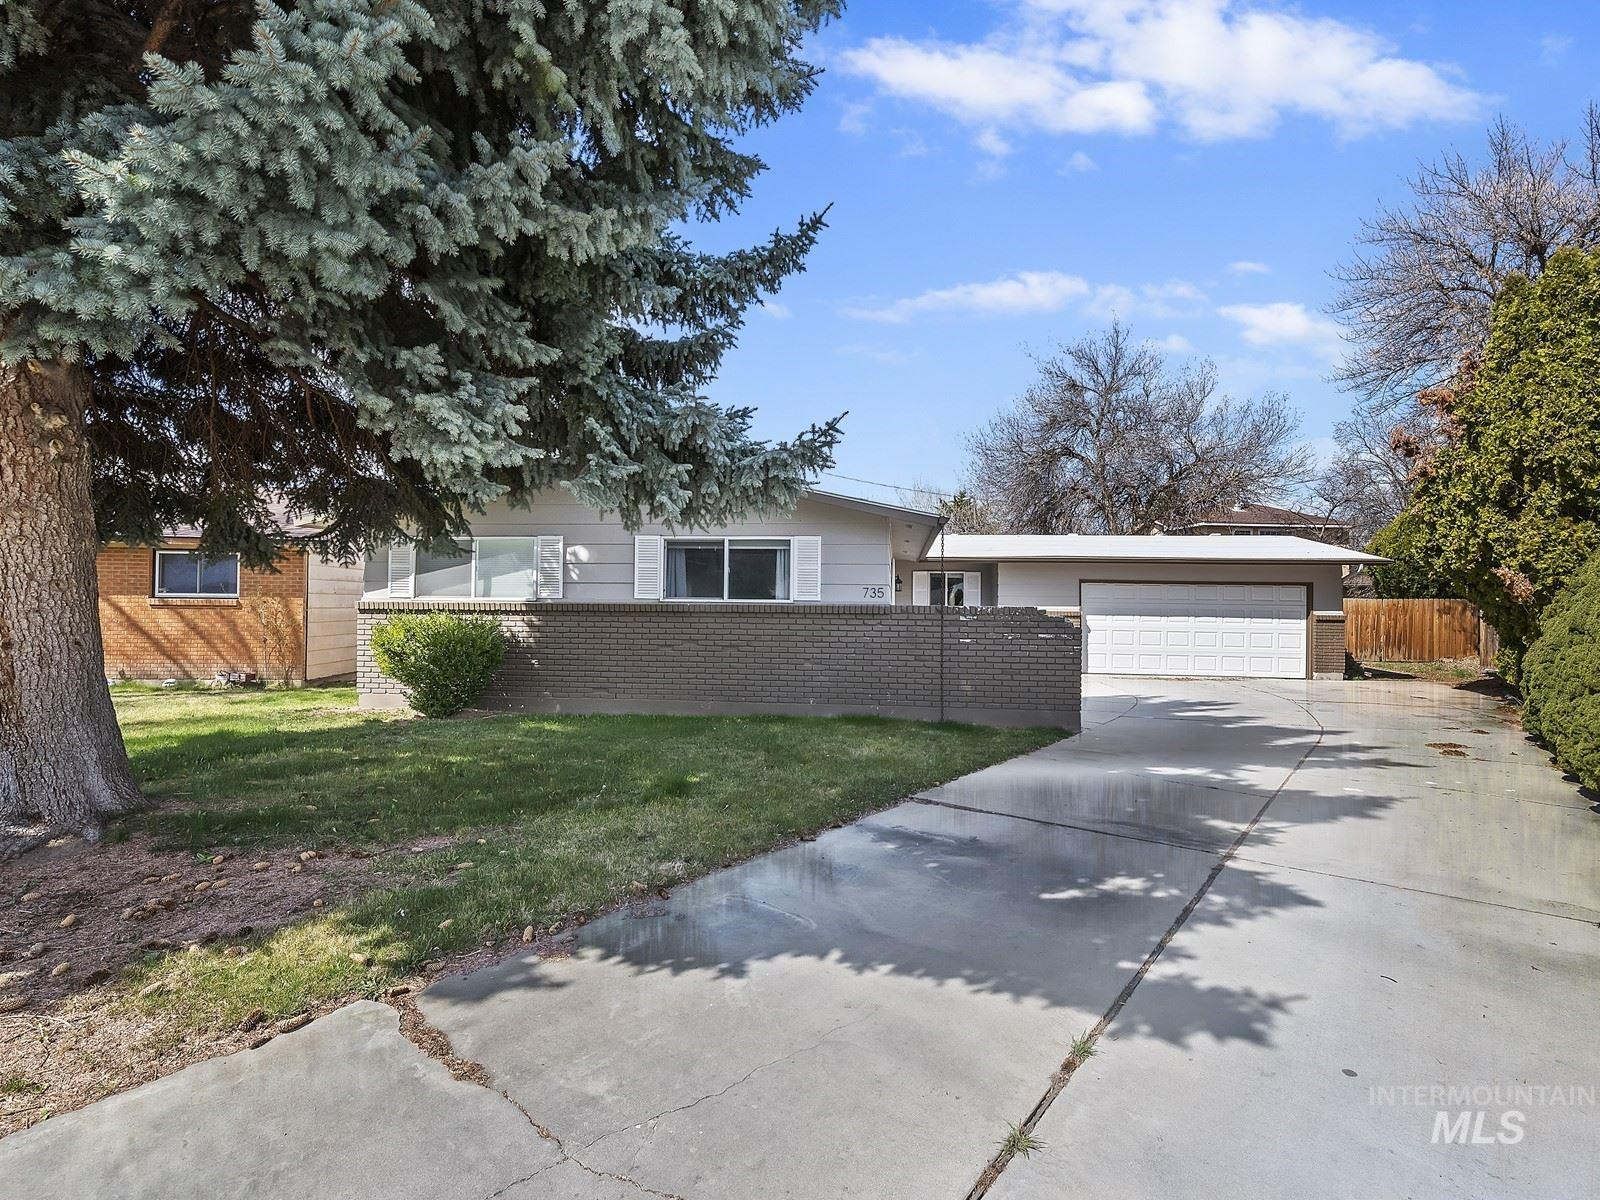 735 S Kirby St Property Photo - Boise, ID real estate listing